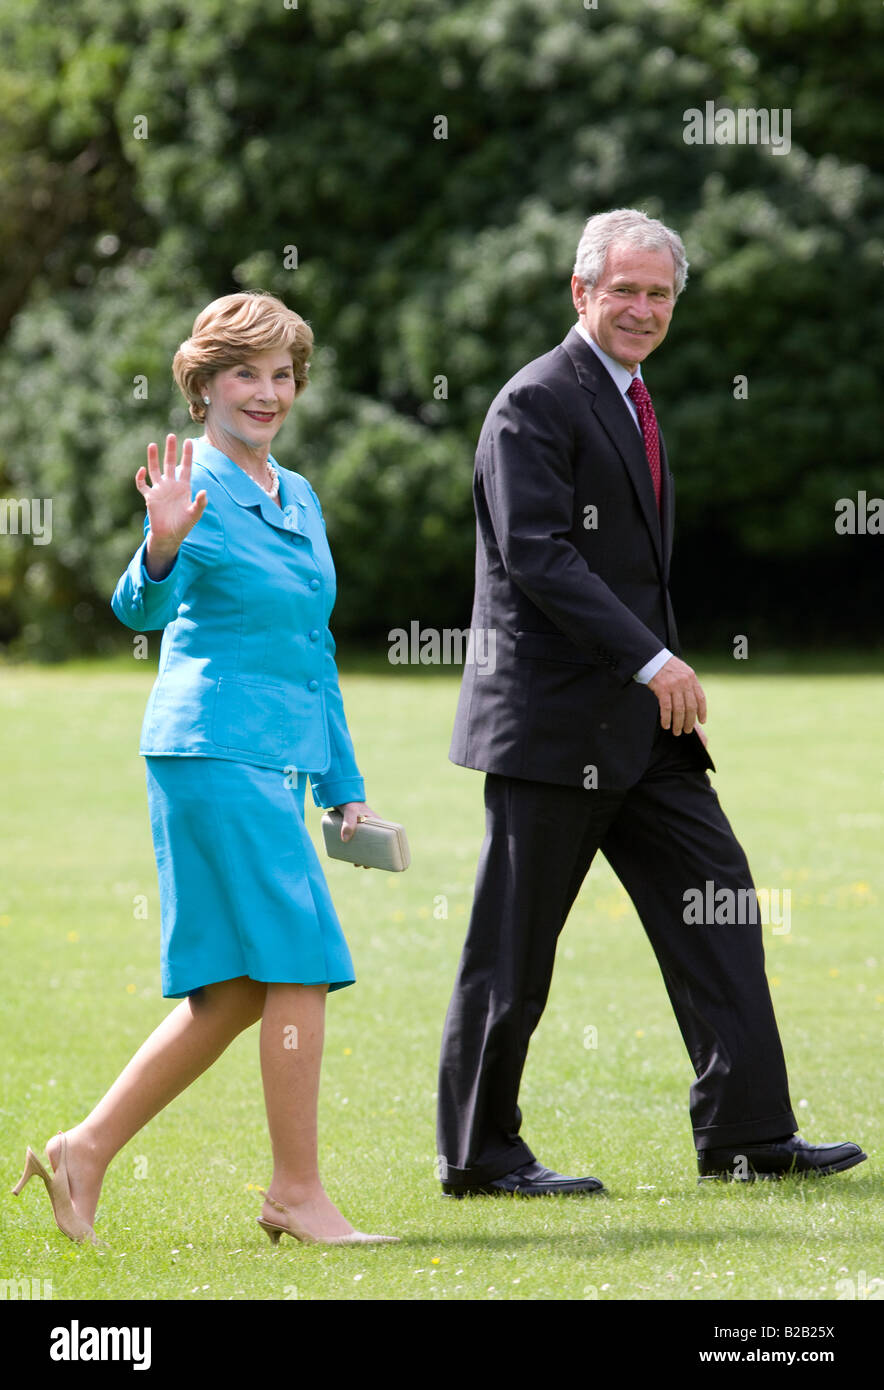 President George W Bush and his wife First Lady Laura Bush in England United Kingdom Stock Photo